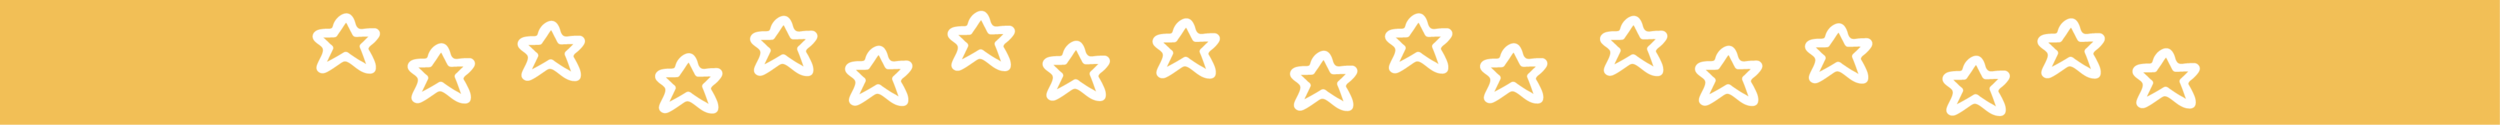 Girls Who Can yellow bar 50 stars.png